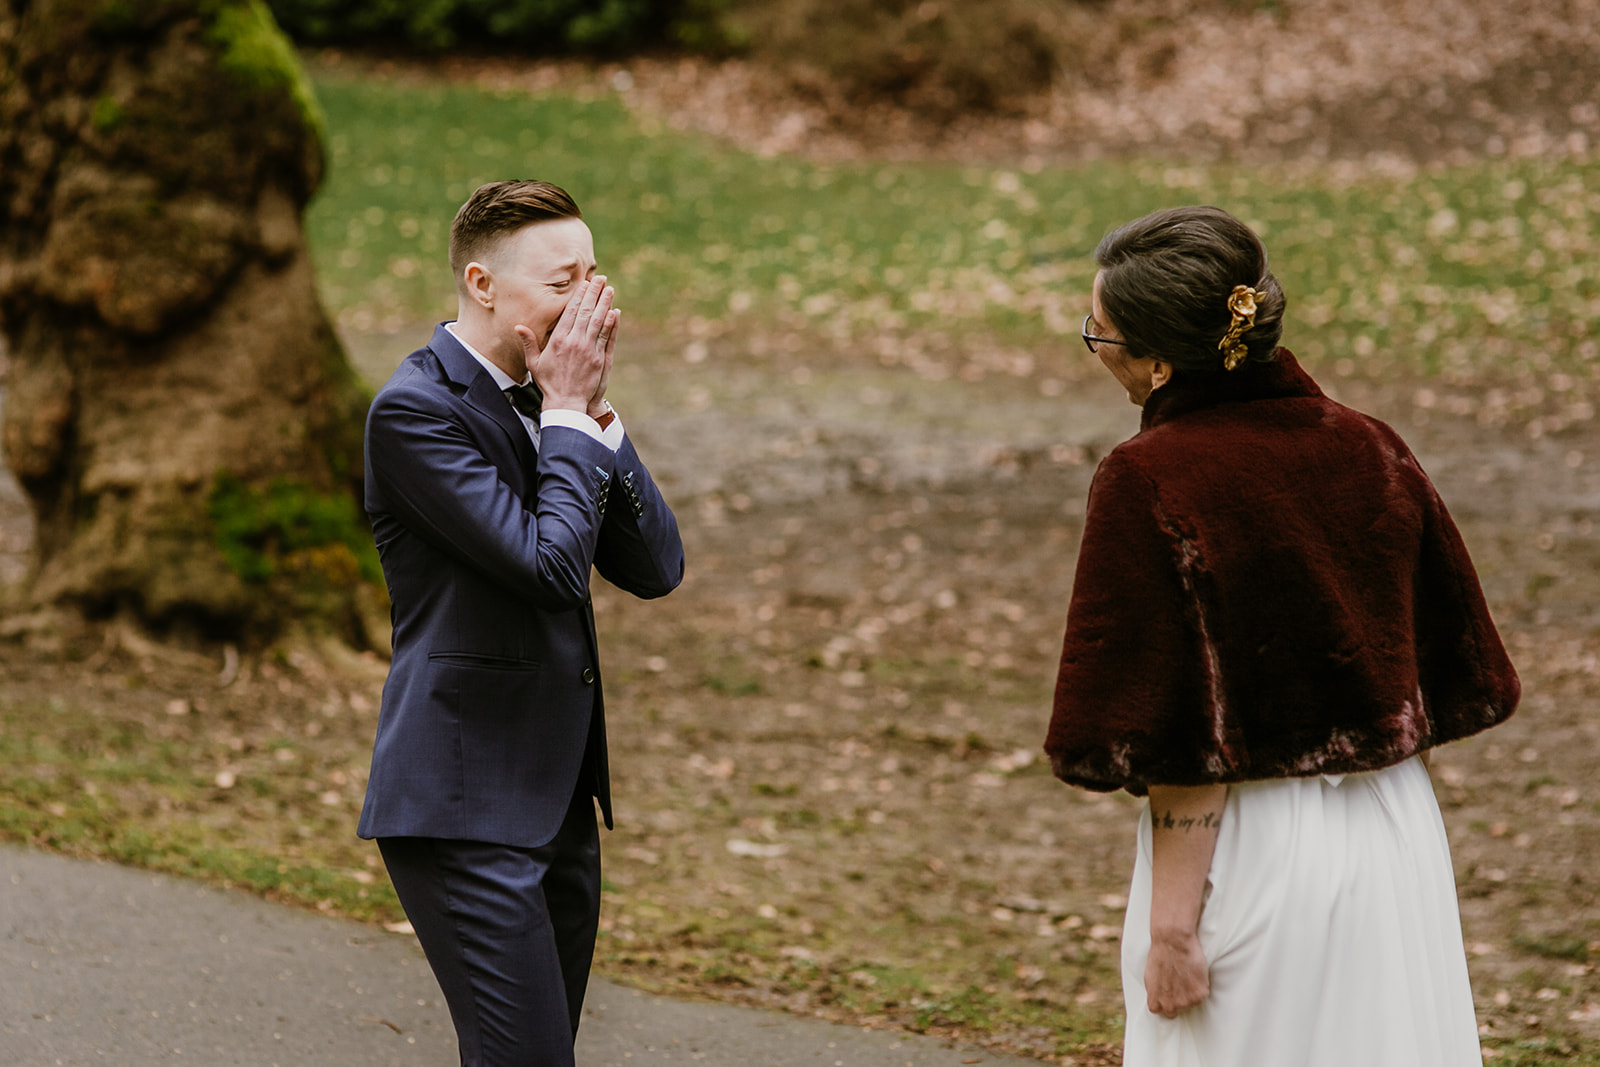 winter coopers hall wedding portland | planning: peachy keen coordination | photo: catalina jean photography